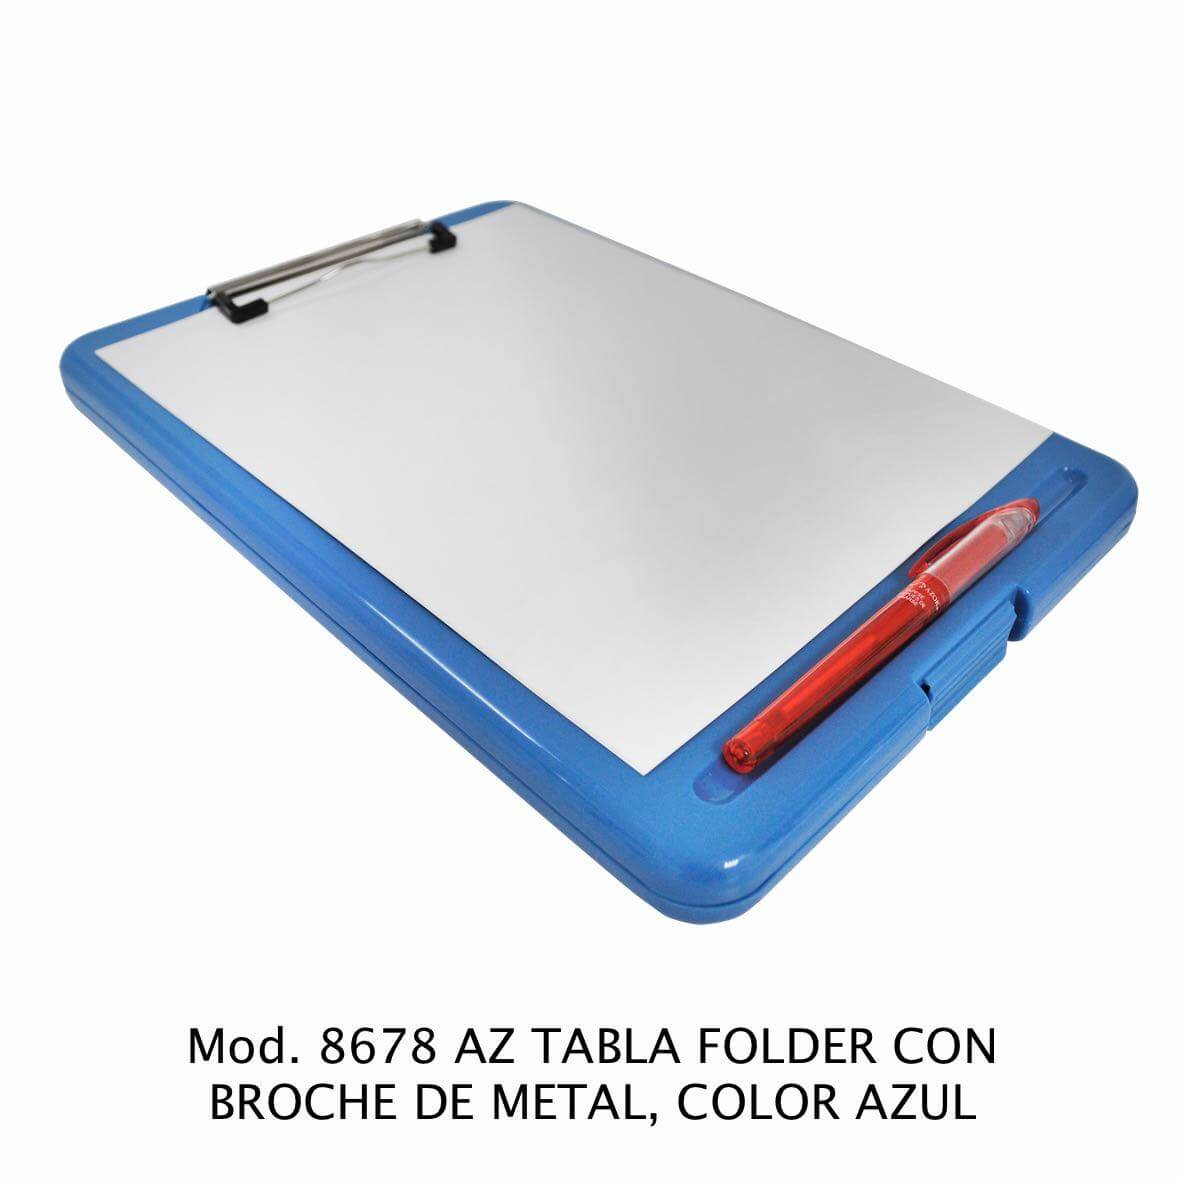 Tabla Folder con broche de metal color azul modelo 8678 AZ - Sablón